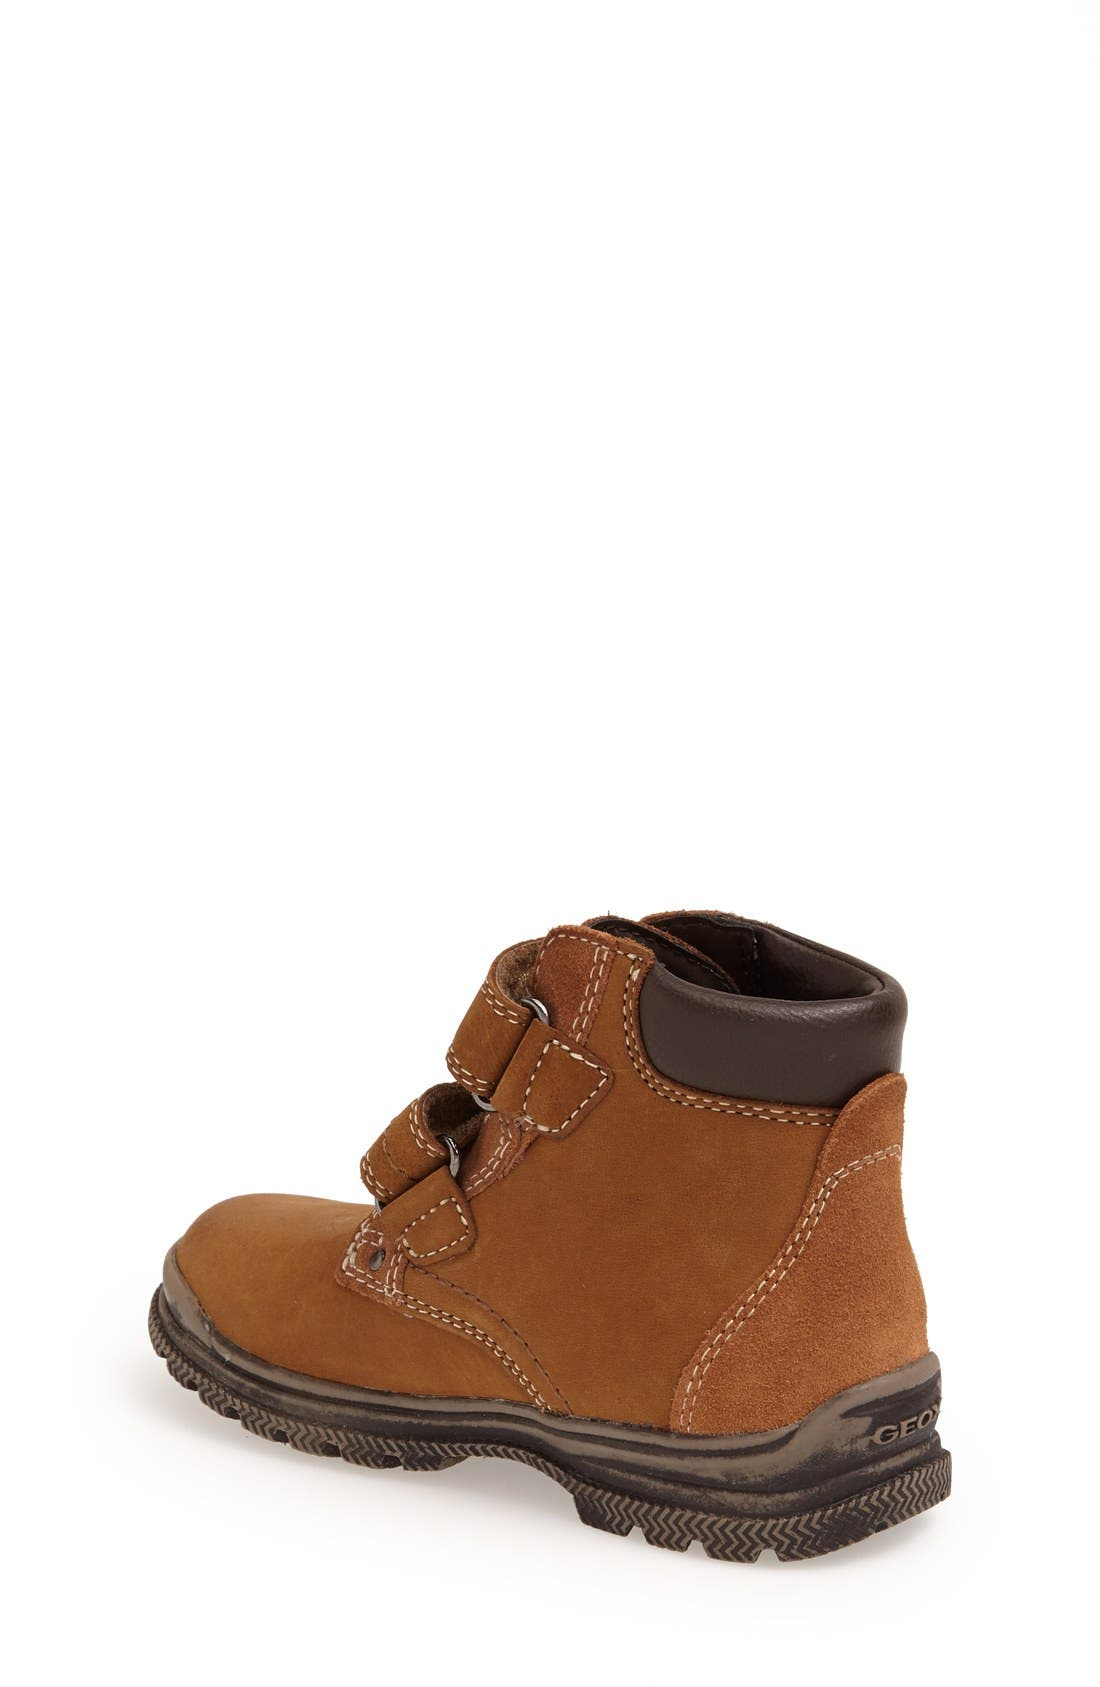 Alternate Image 2  - Geox 'William 18' Boot (Toddler, Little Kid & Big Kid)